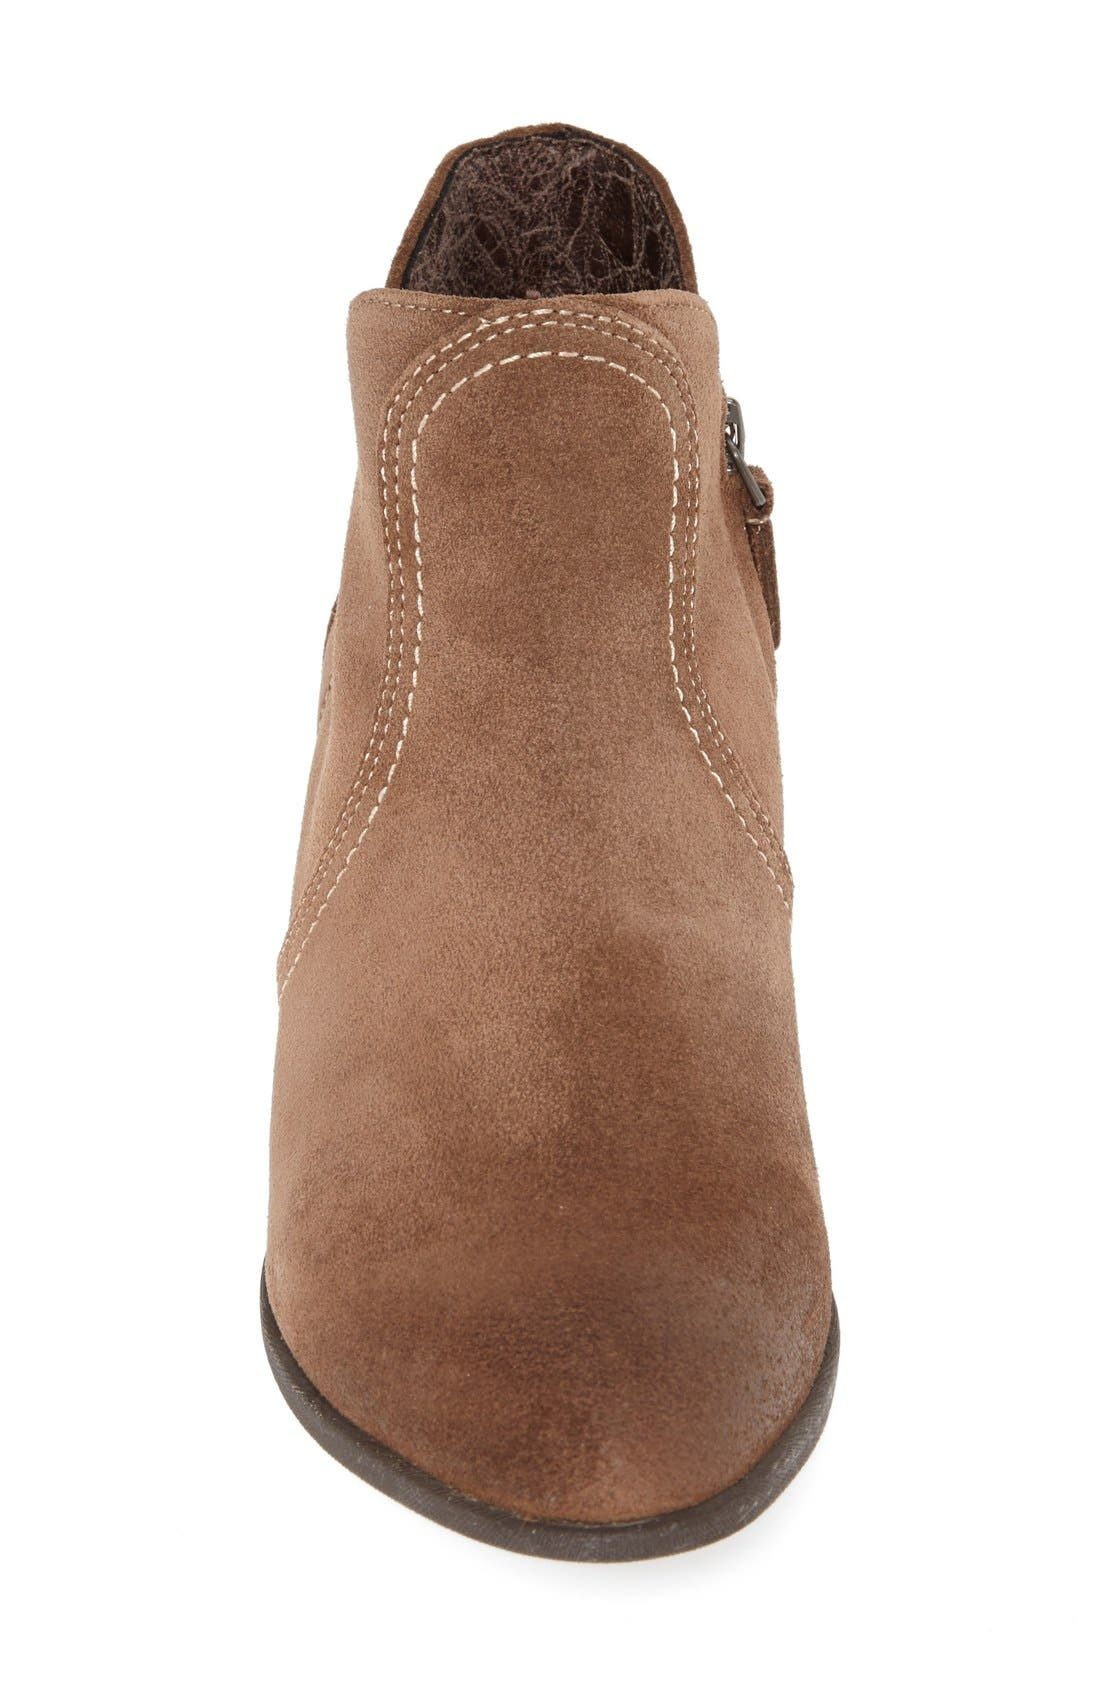 'Astor' Suede Ankle Bootie,                             Alternate thumbnail 3, color,                             201